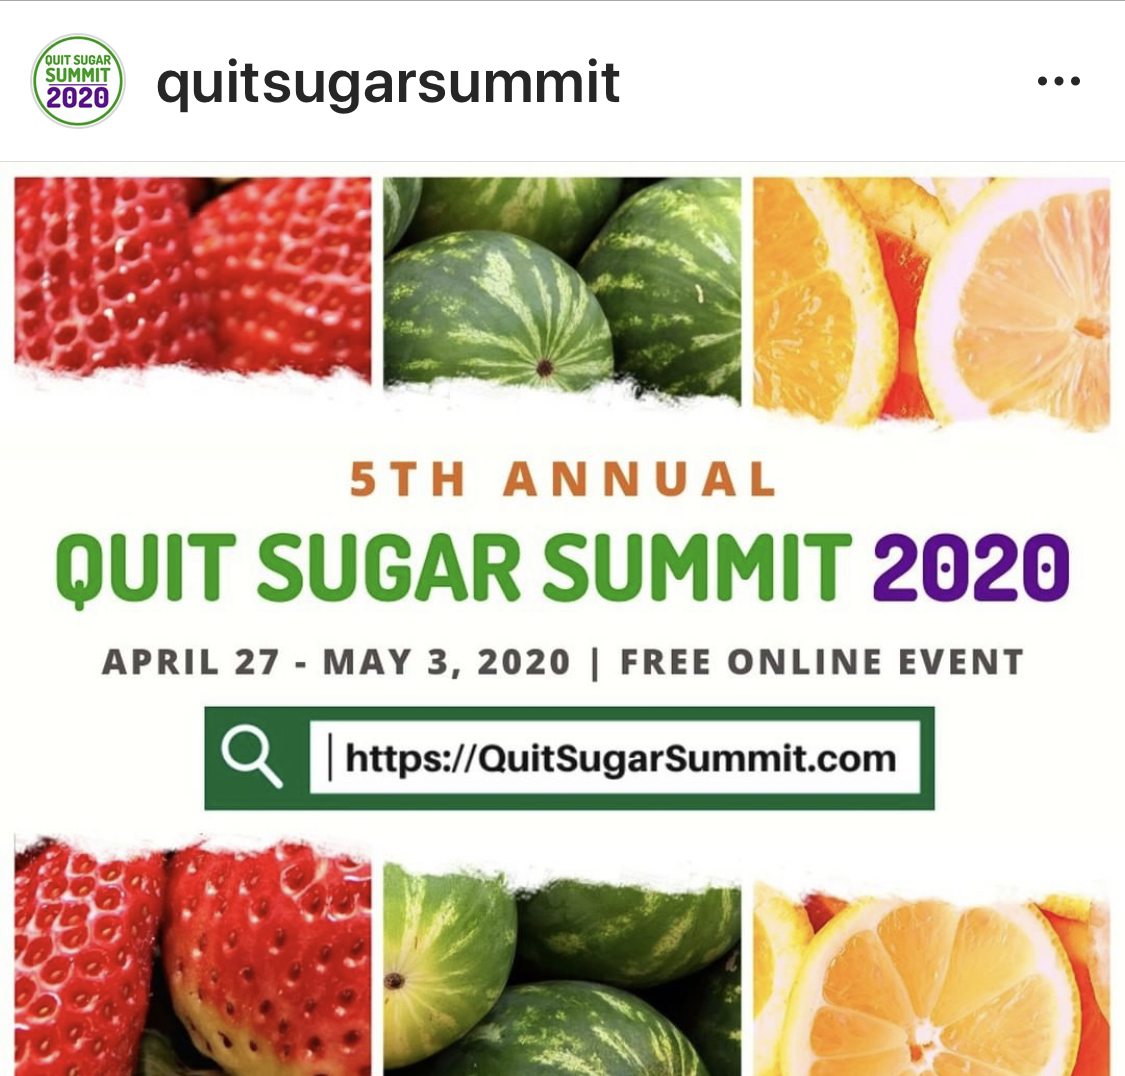 Quit Sugar Summit 2020 poster